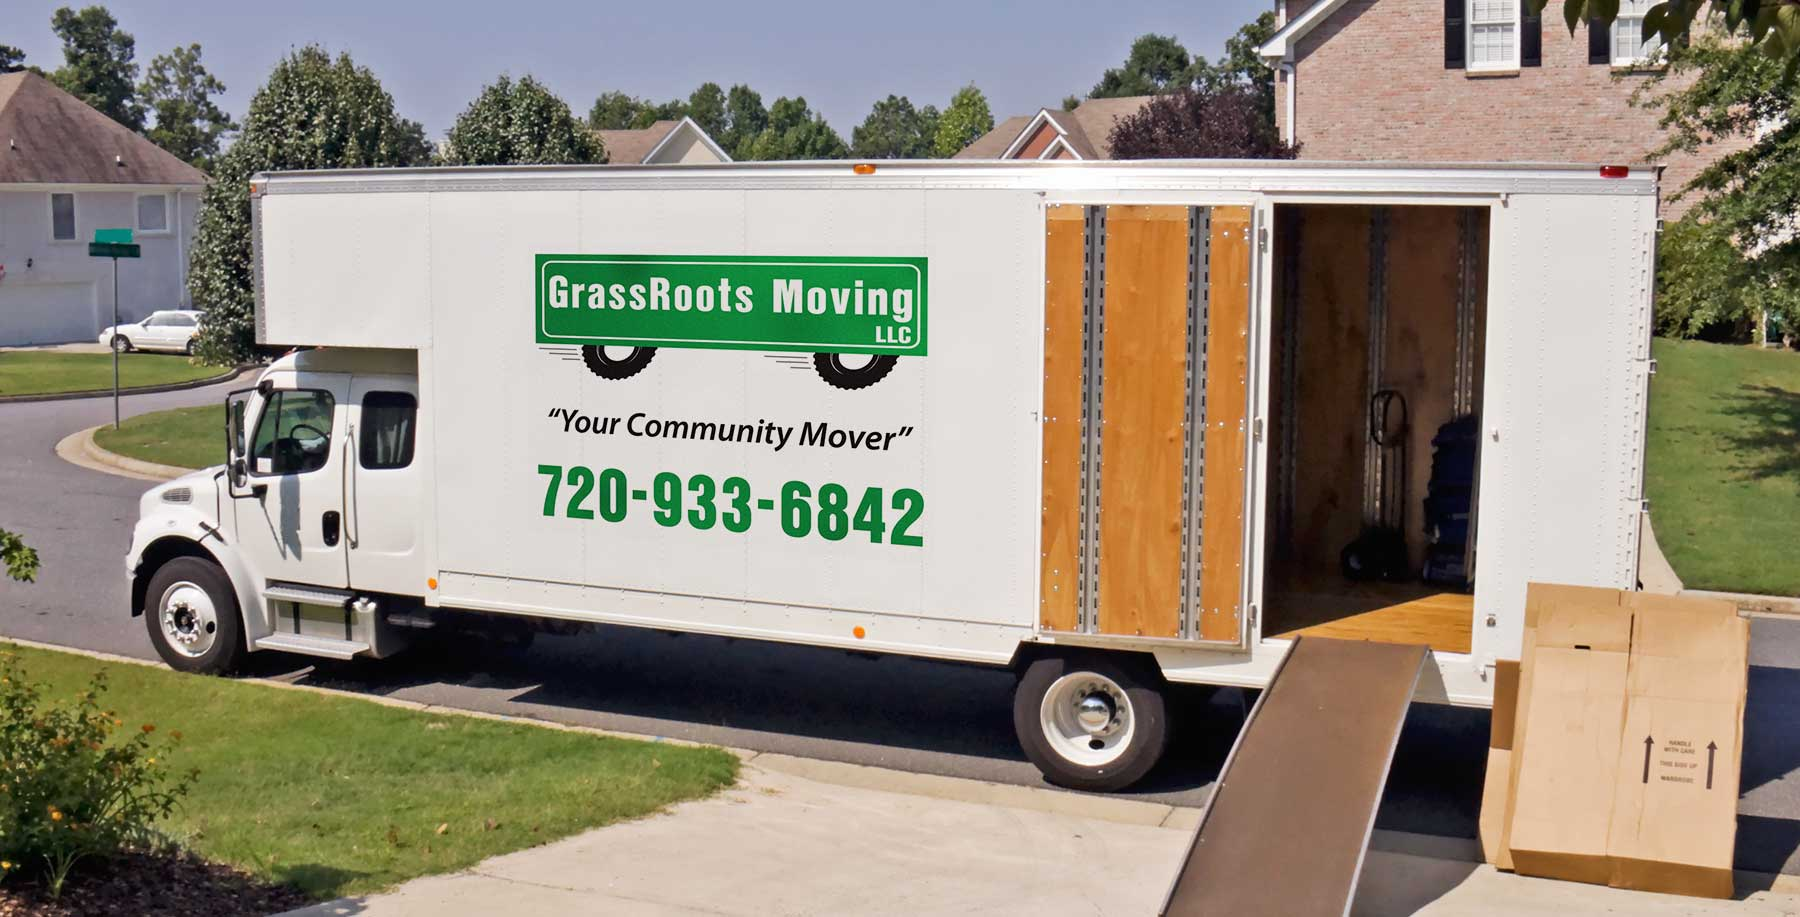 GrassRoots Moving truck